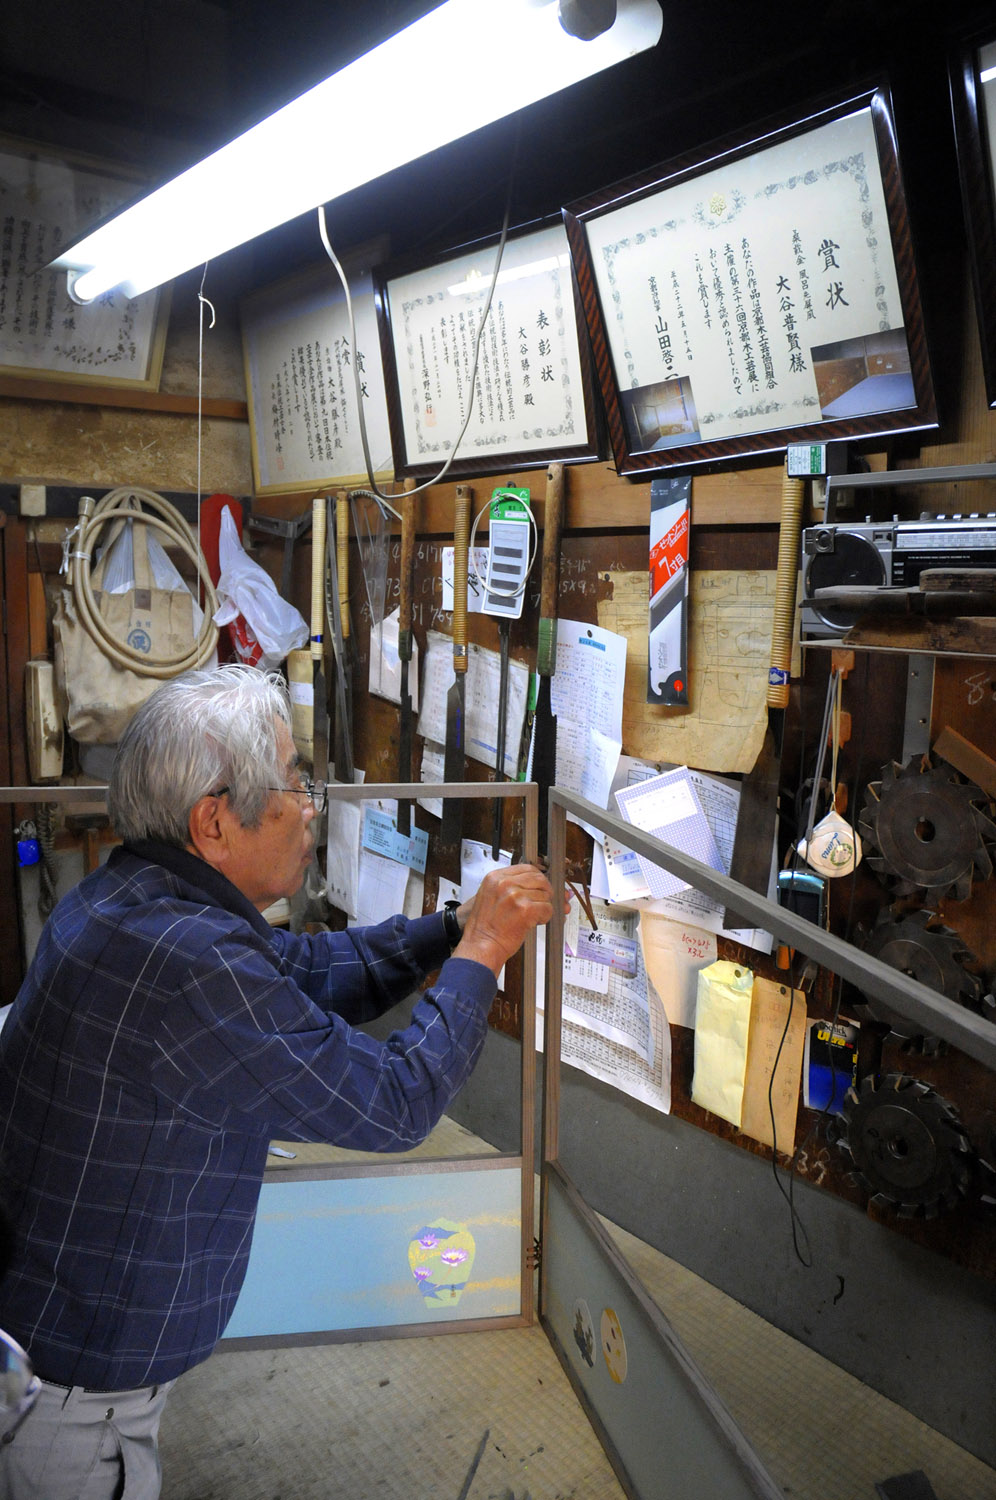 Screen maker in Nishijin